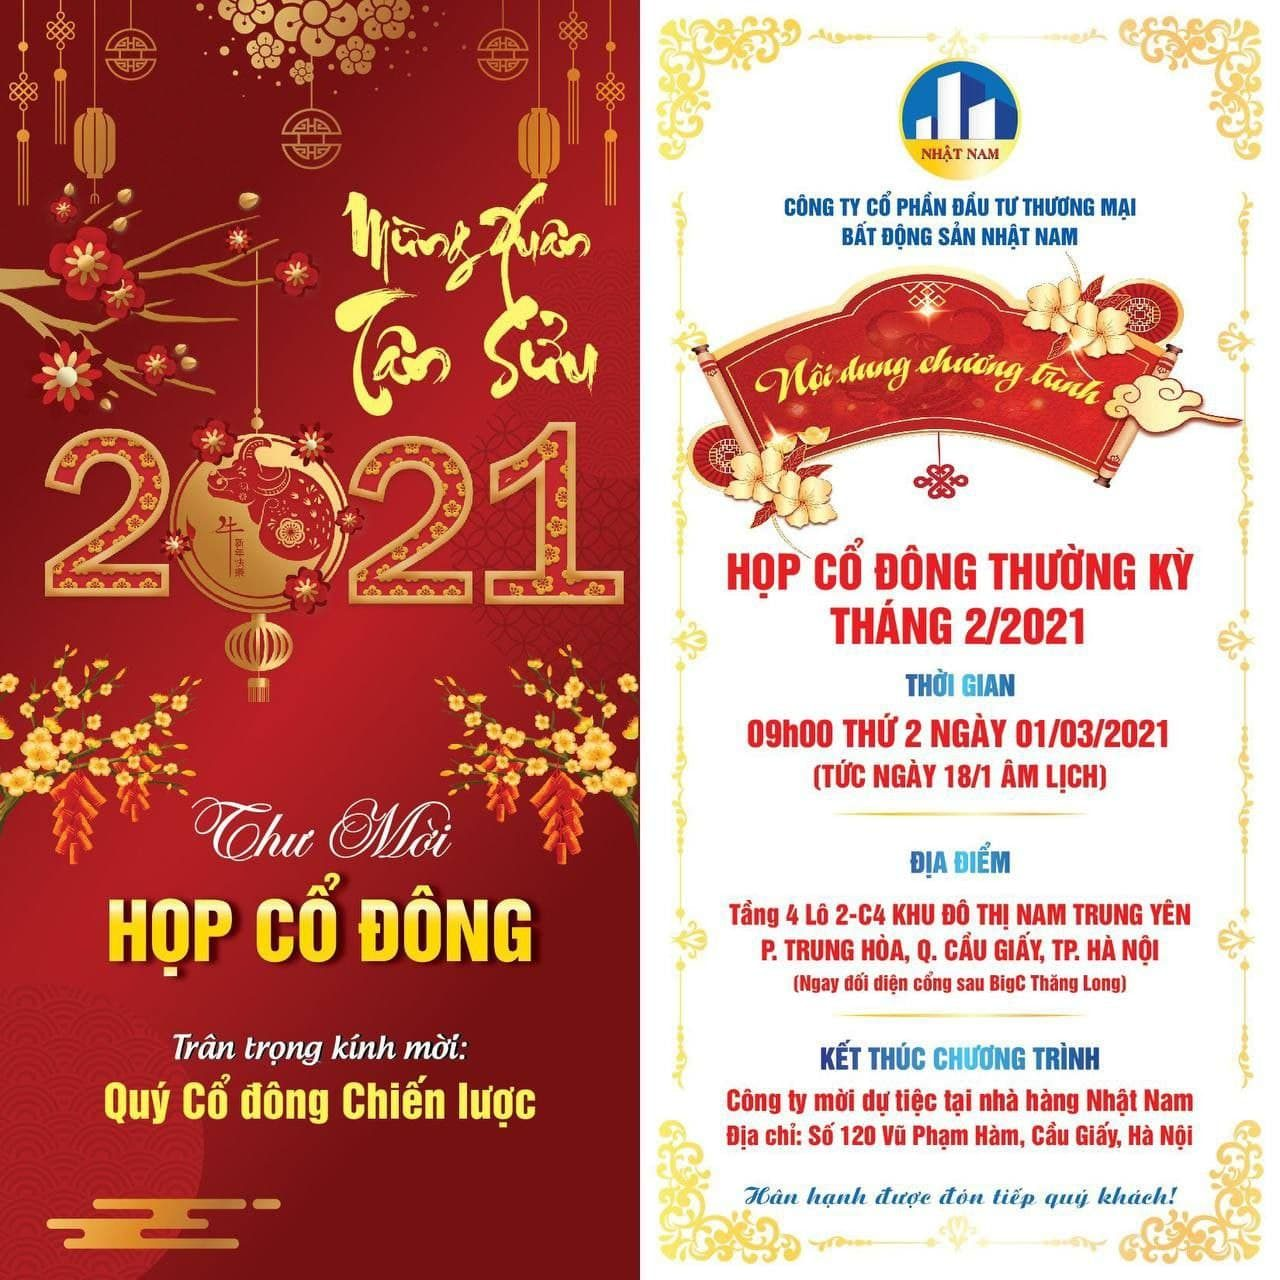 Thu Moi Hop Co Dong Chien Luoc Thang 2 Nam 2021